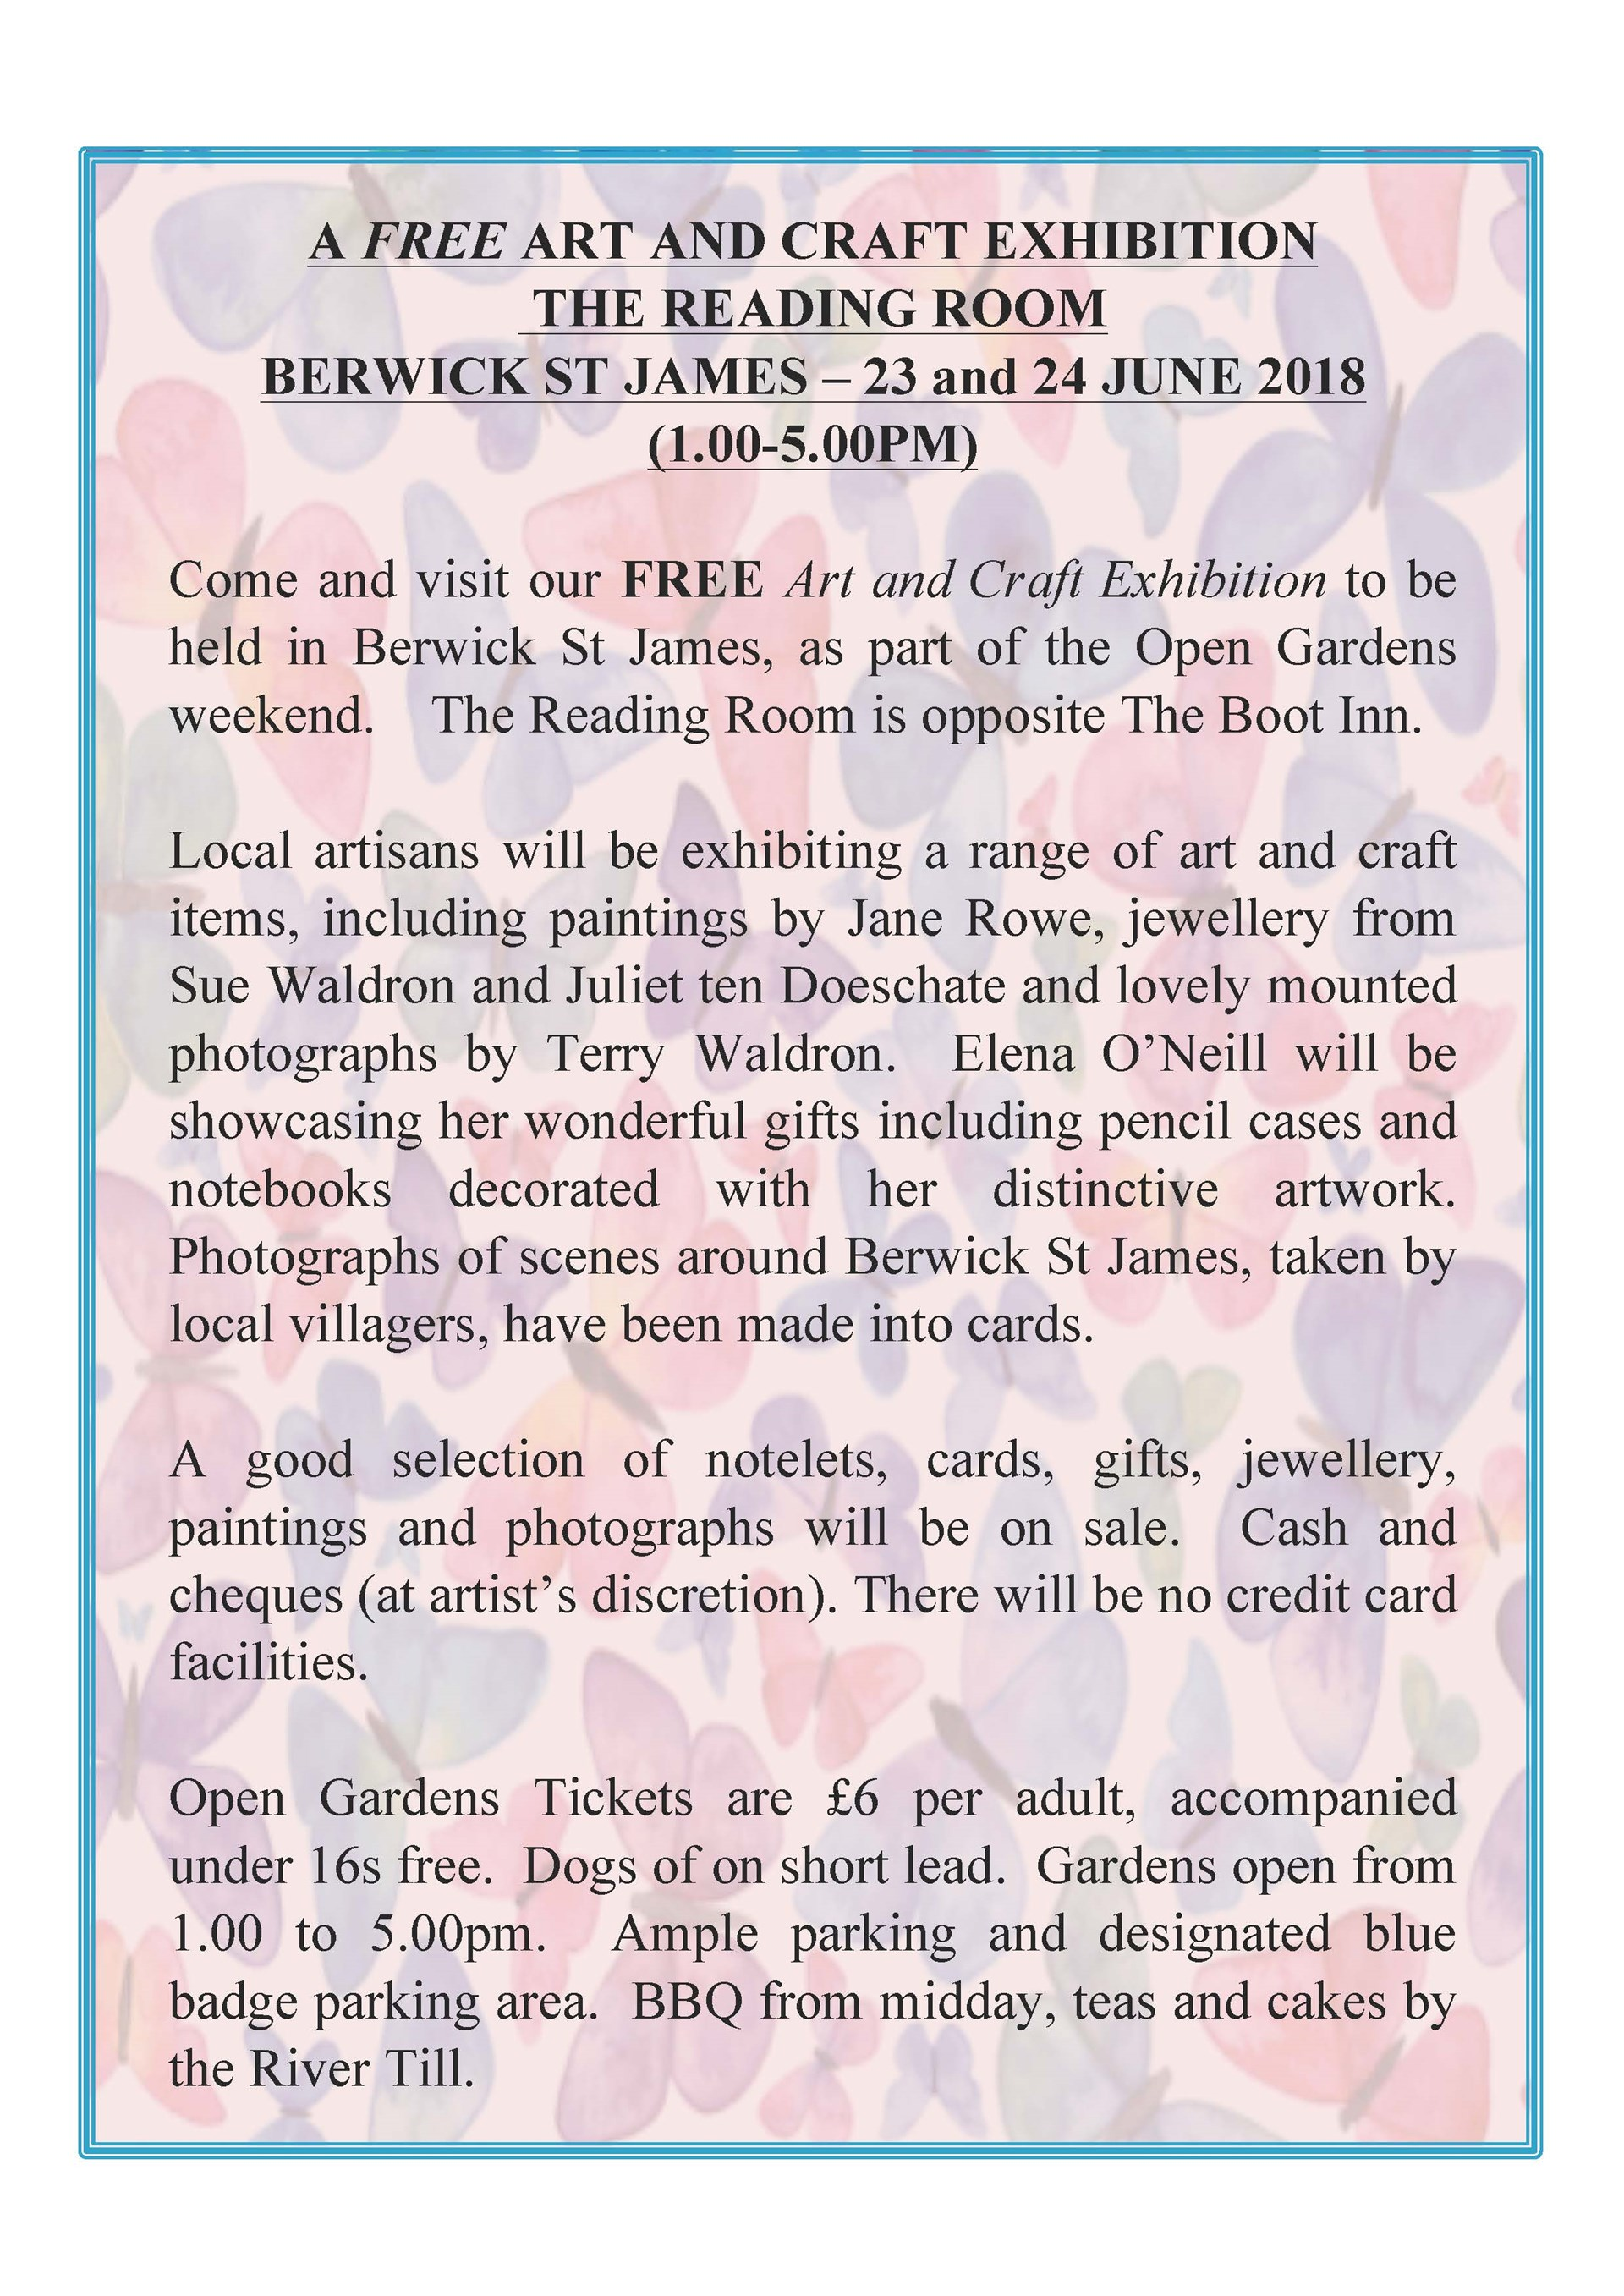 Berwick St James Parish Art and Craft Exhibition